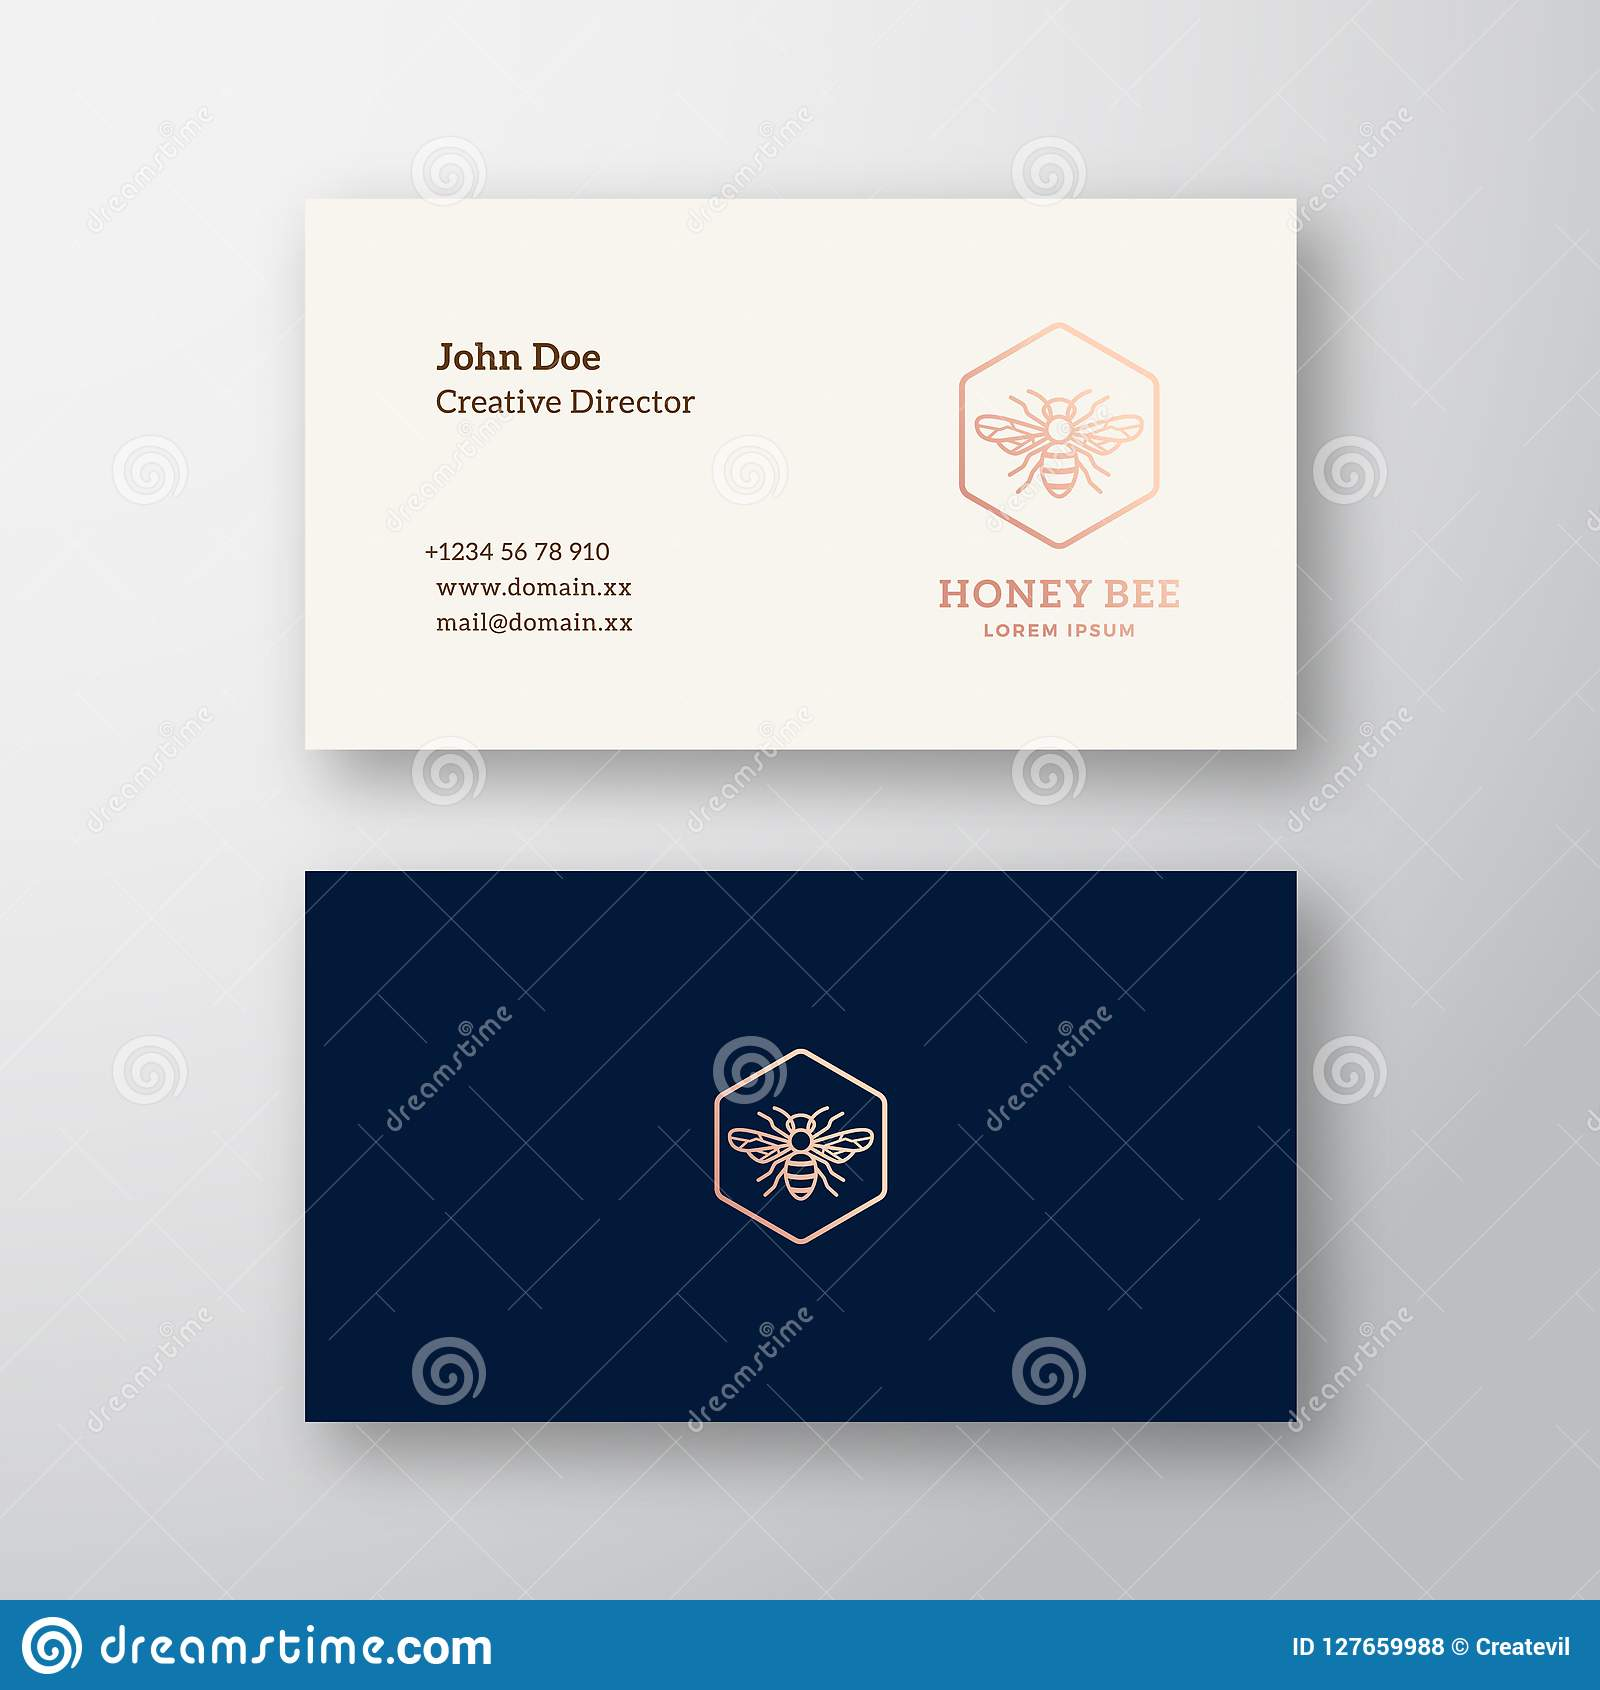 Honey Bee Abstract Elegant Vector Logo and Business Card Template. Line  Style Bee Icon. Premium Stationary Realistic Mock Up. Modern Typography and  Soft